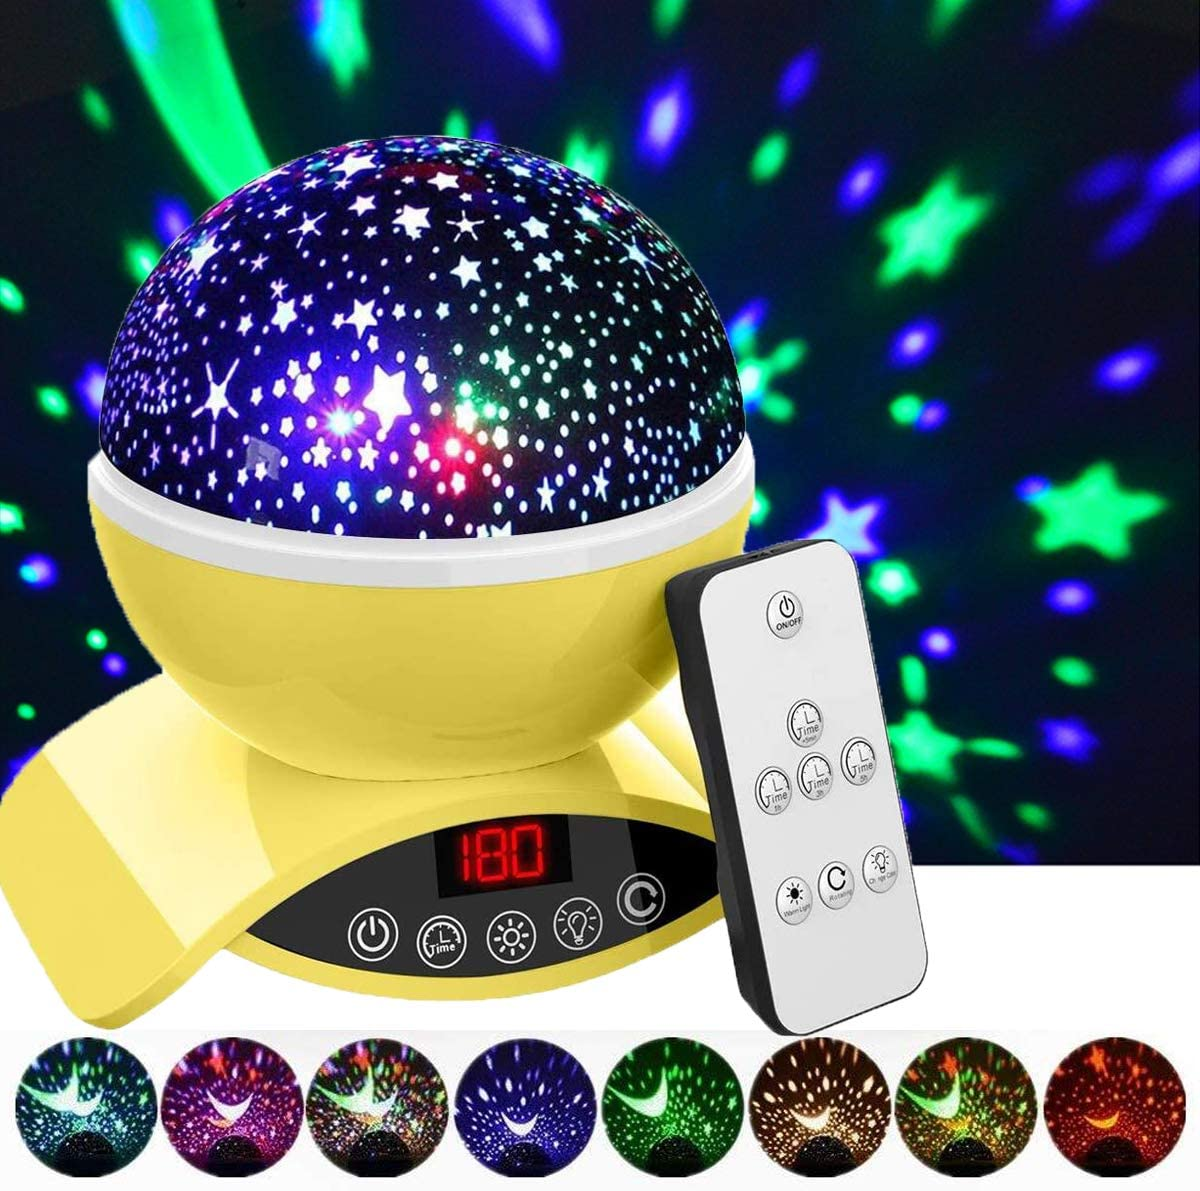 Elecstars Night Lights, Rechargeable Star Projector with Remote Control and Timer Auto Off Design, Rotating Projection Lighting Lamp, Room Decor. (Yellow)